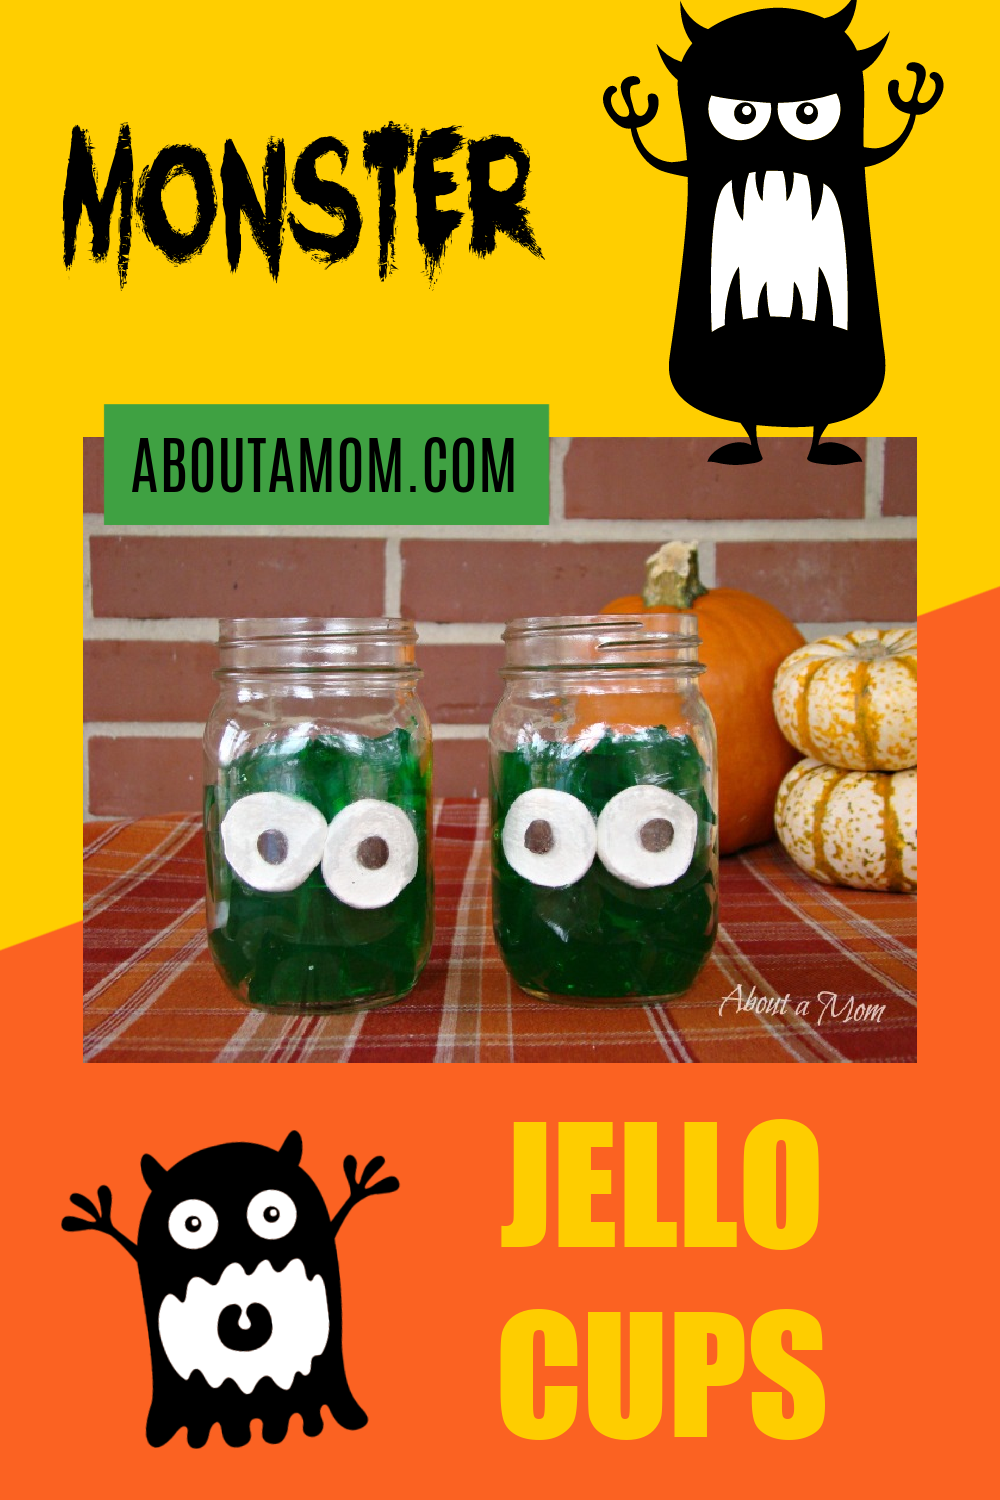 These are the easiest Halloween Jello Cups to make! Monster Jello Cups are a fun and simple Halloween snack that's not too scary and suitable for  younger kids, You only need 3 ingredients to make these!